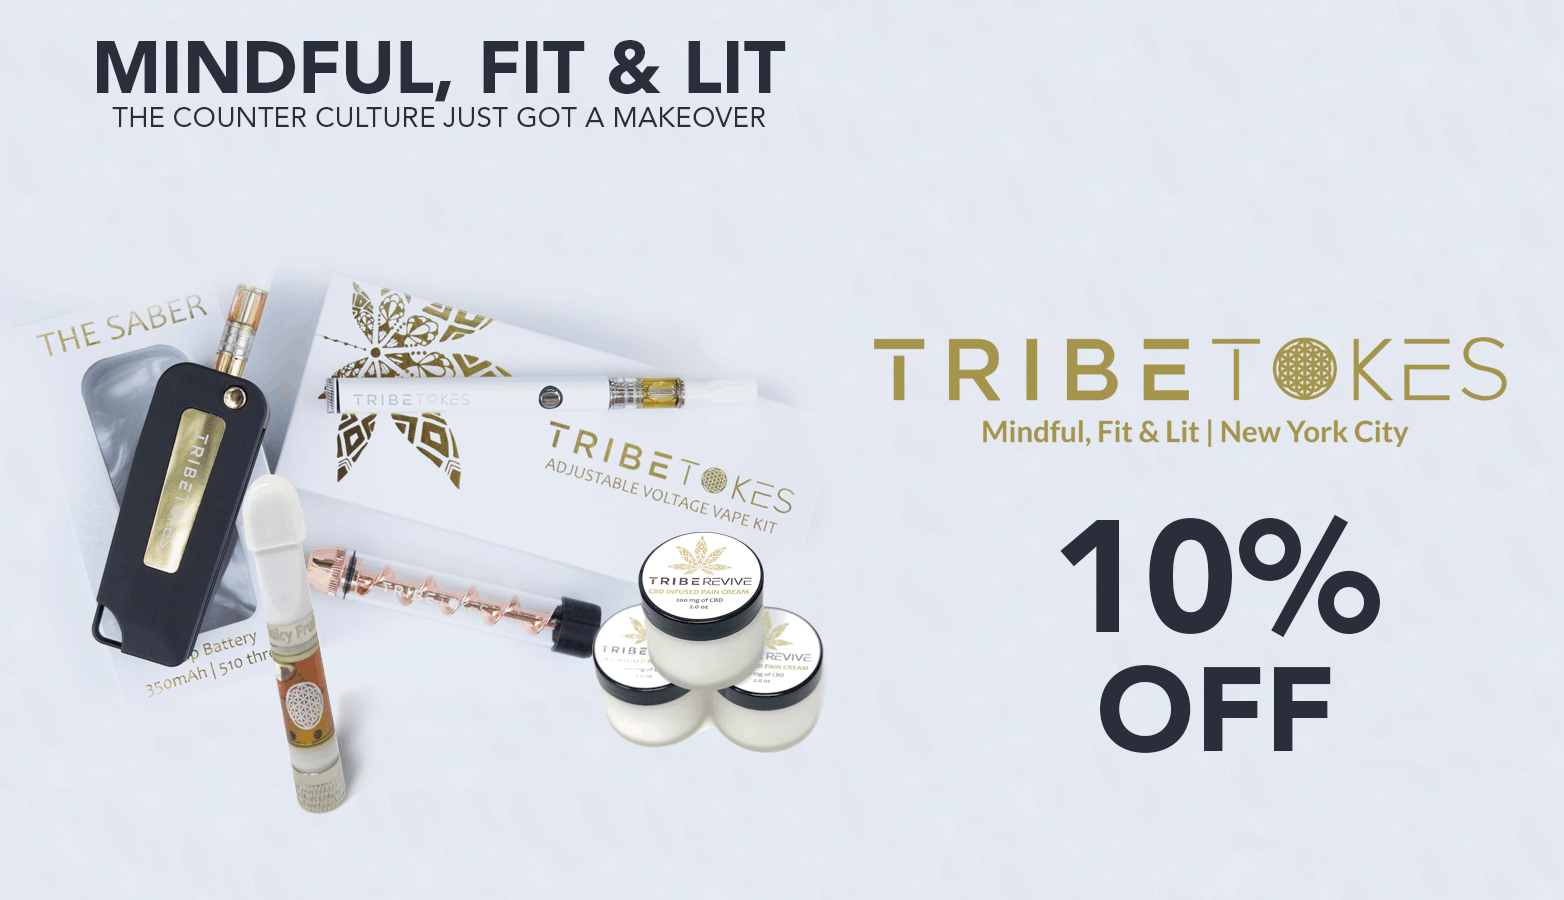 TribeTokes CBD Coupon Code Offer Website